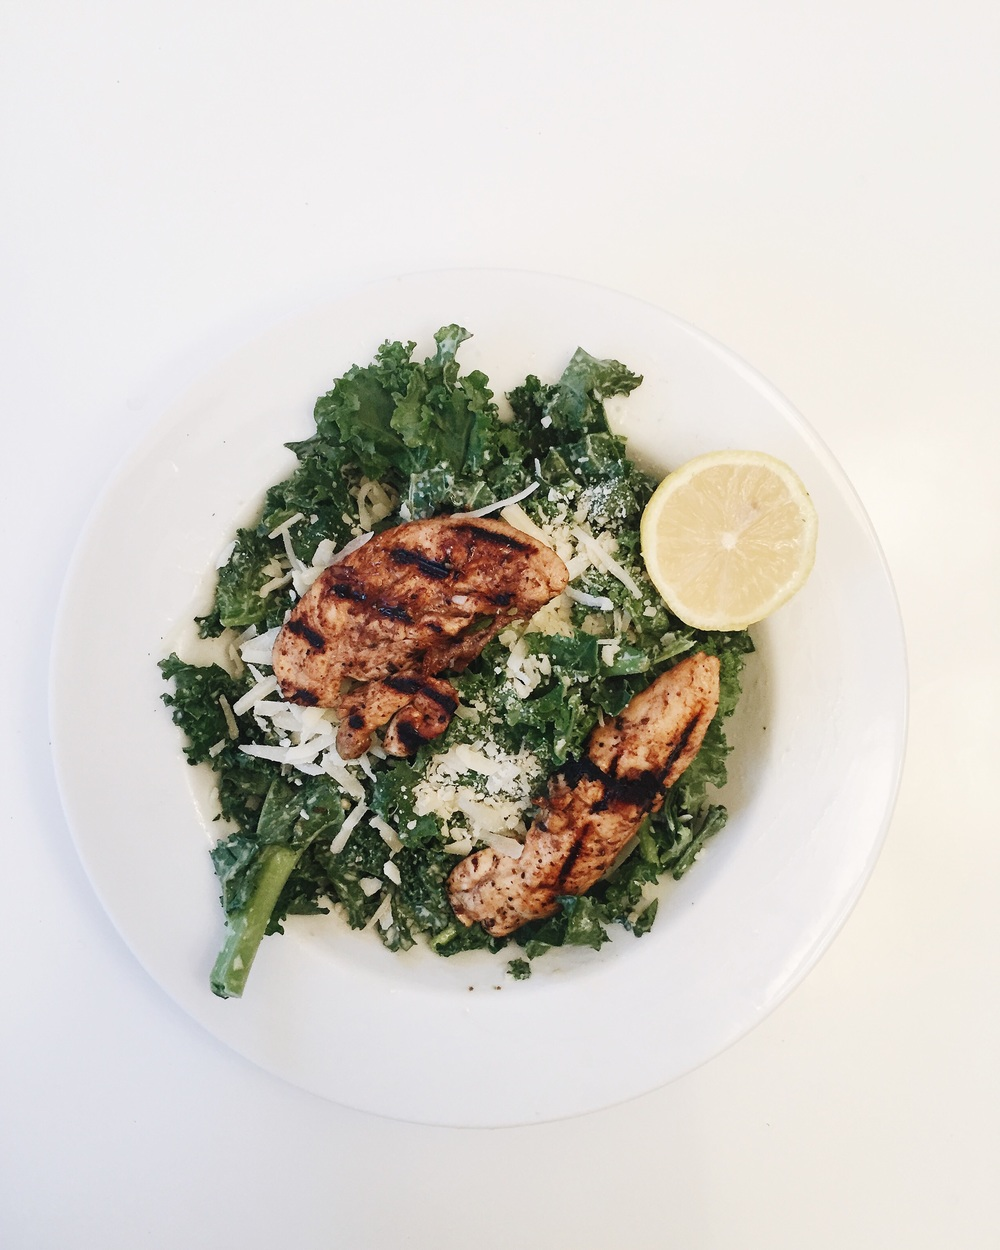 Kale Caesar at Home to Start the Weekend